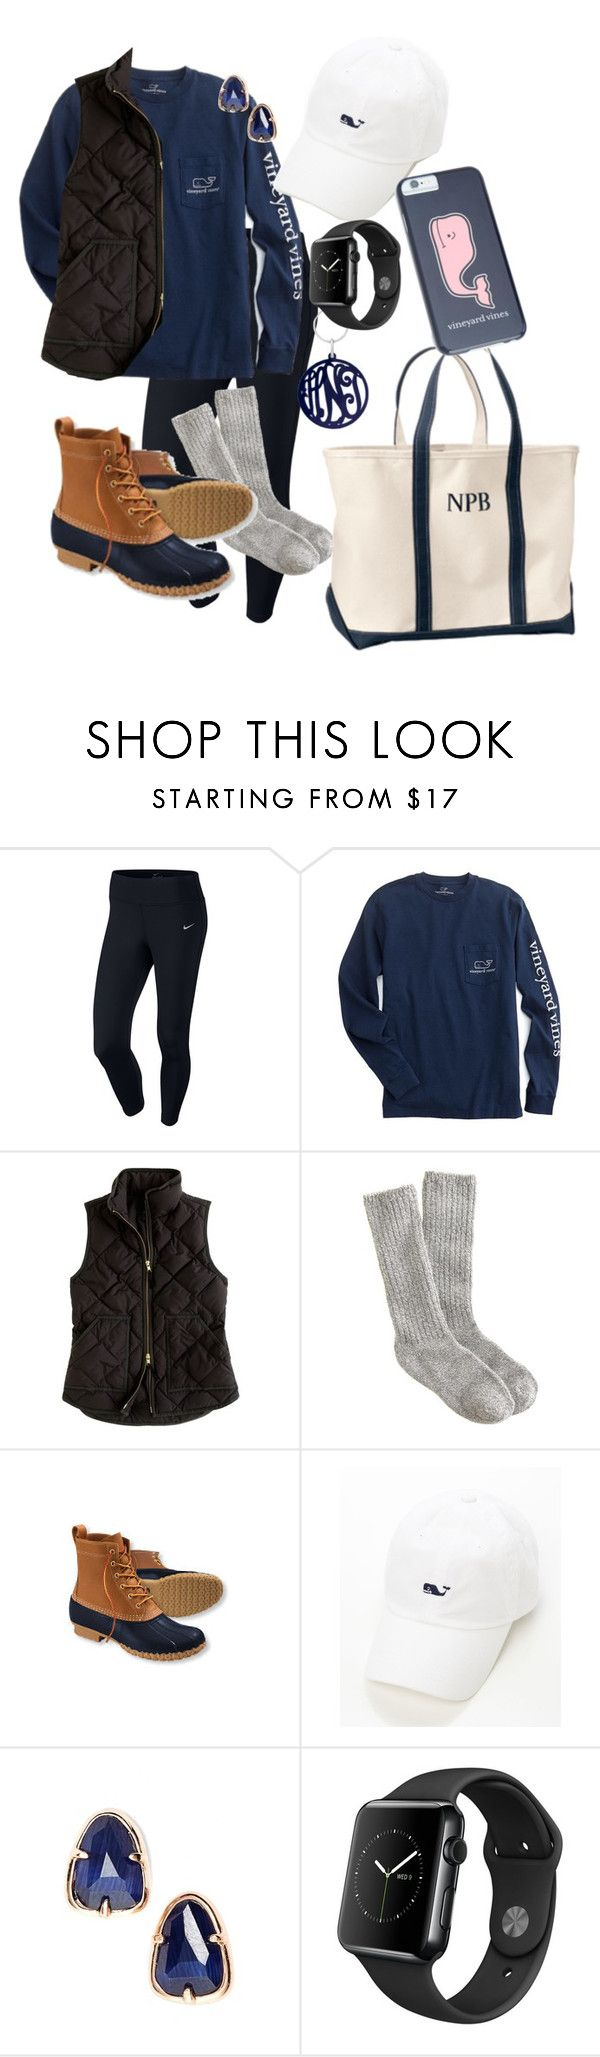 """""""Untitled #55"""" by colleen-alexandra ❤ liked on Polyvore featuring NIKE, J.Crew, L.L.Bean and Kendra Scott"""